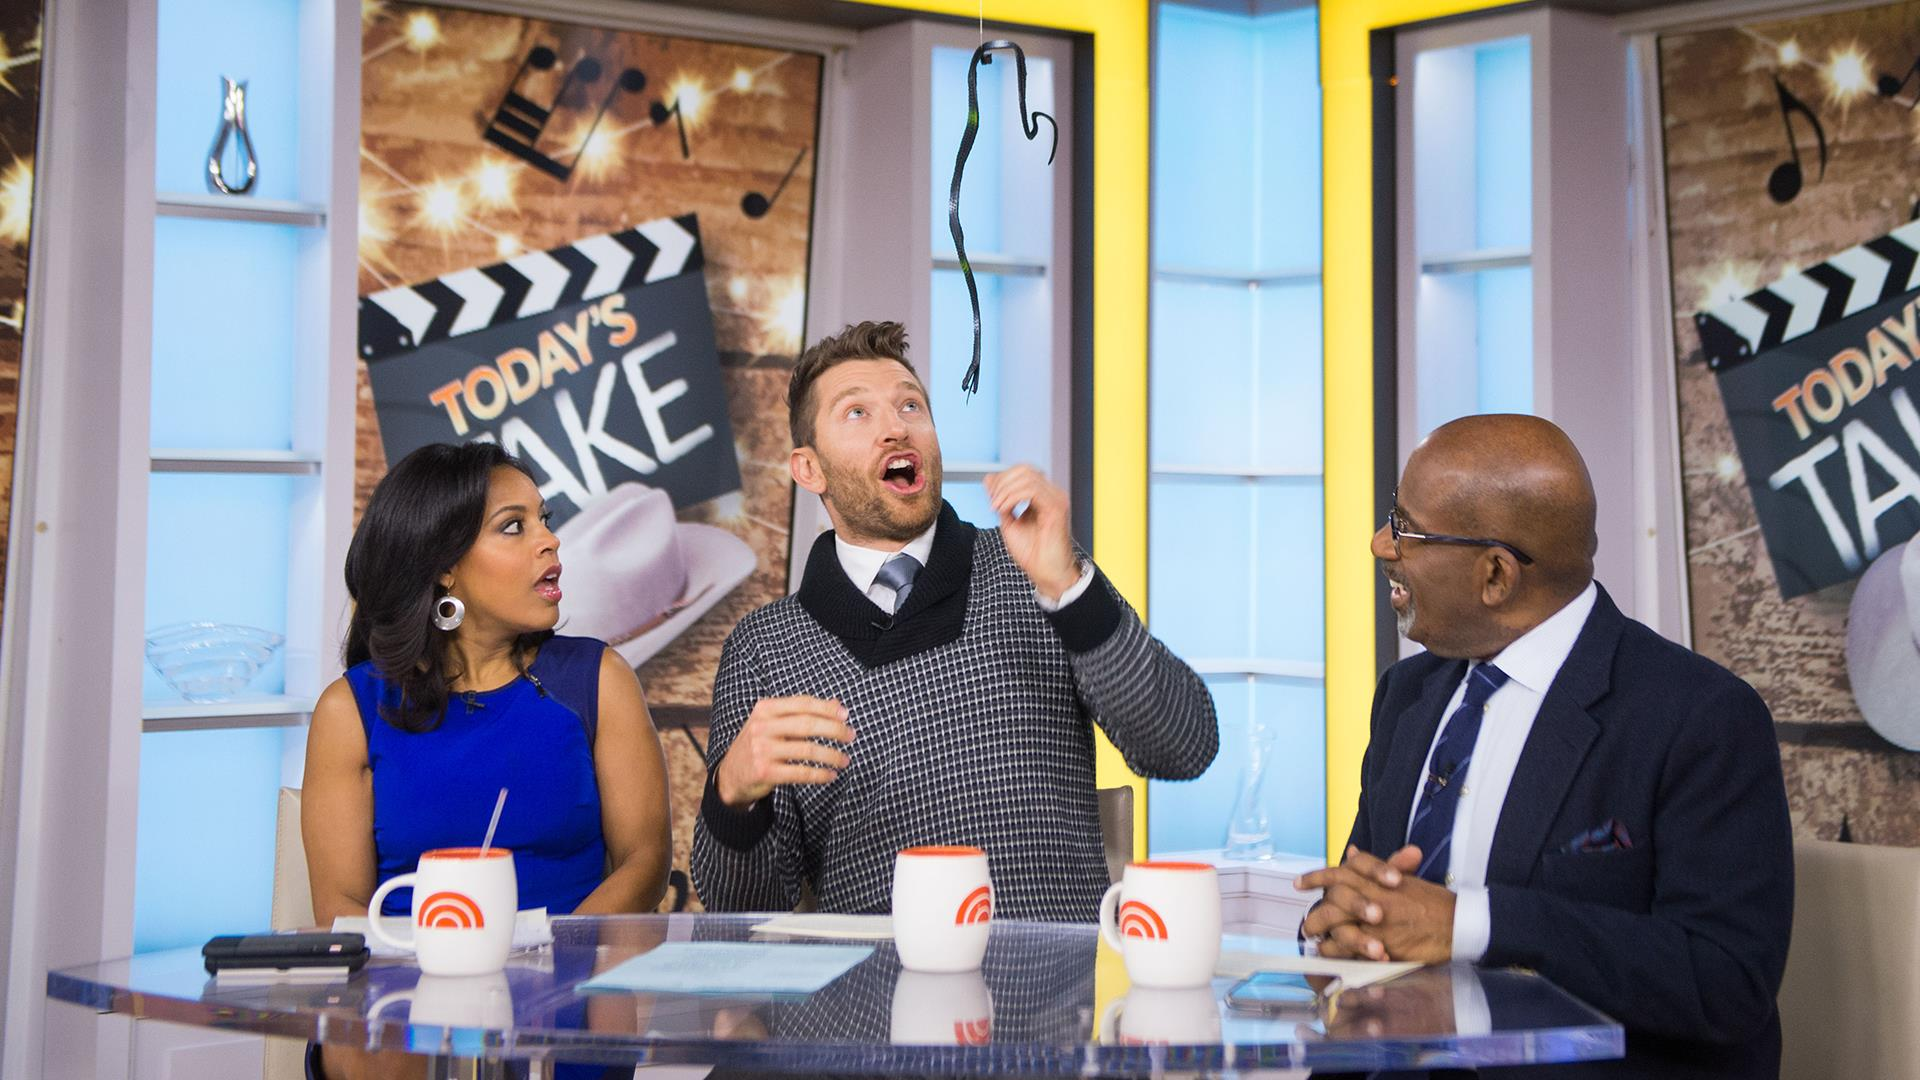 Watch Country Star Brett Eldredge Get Pranked By A Fake Snake On Today